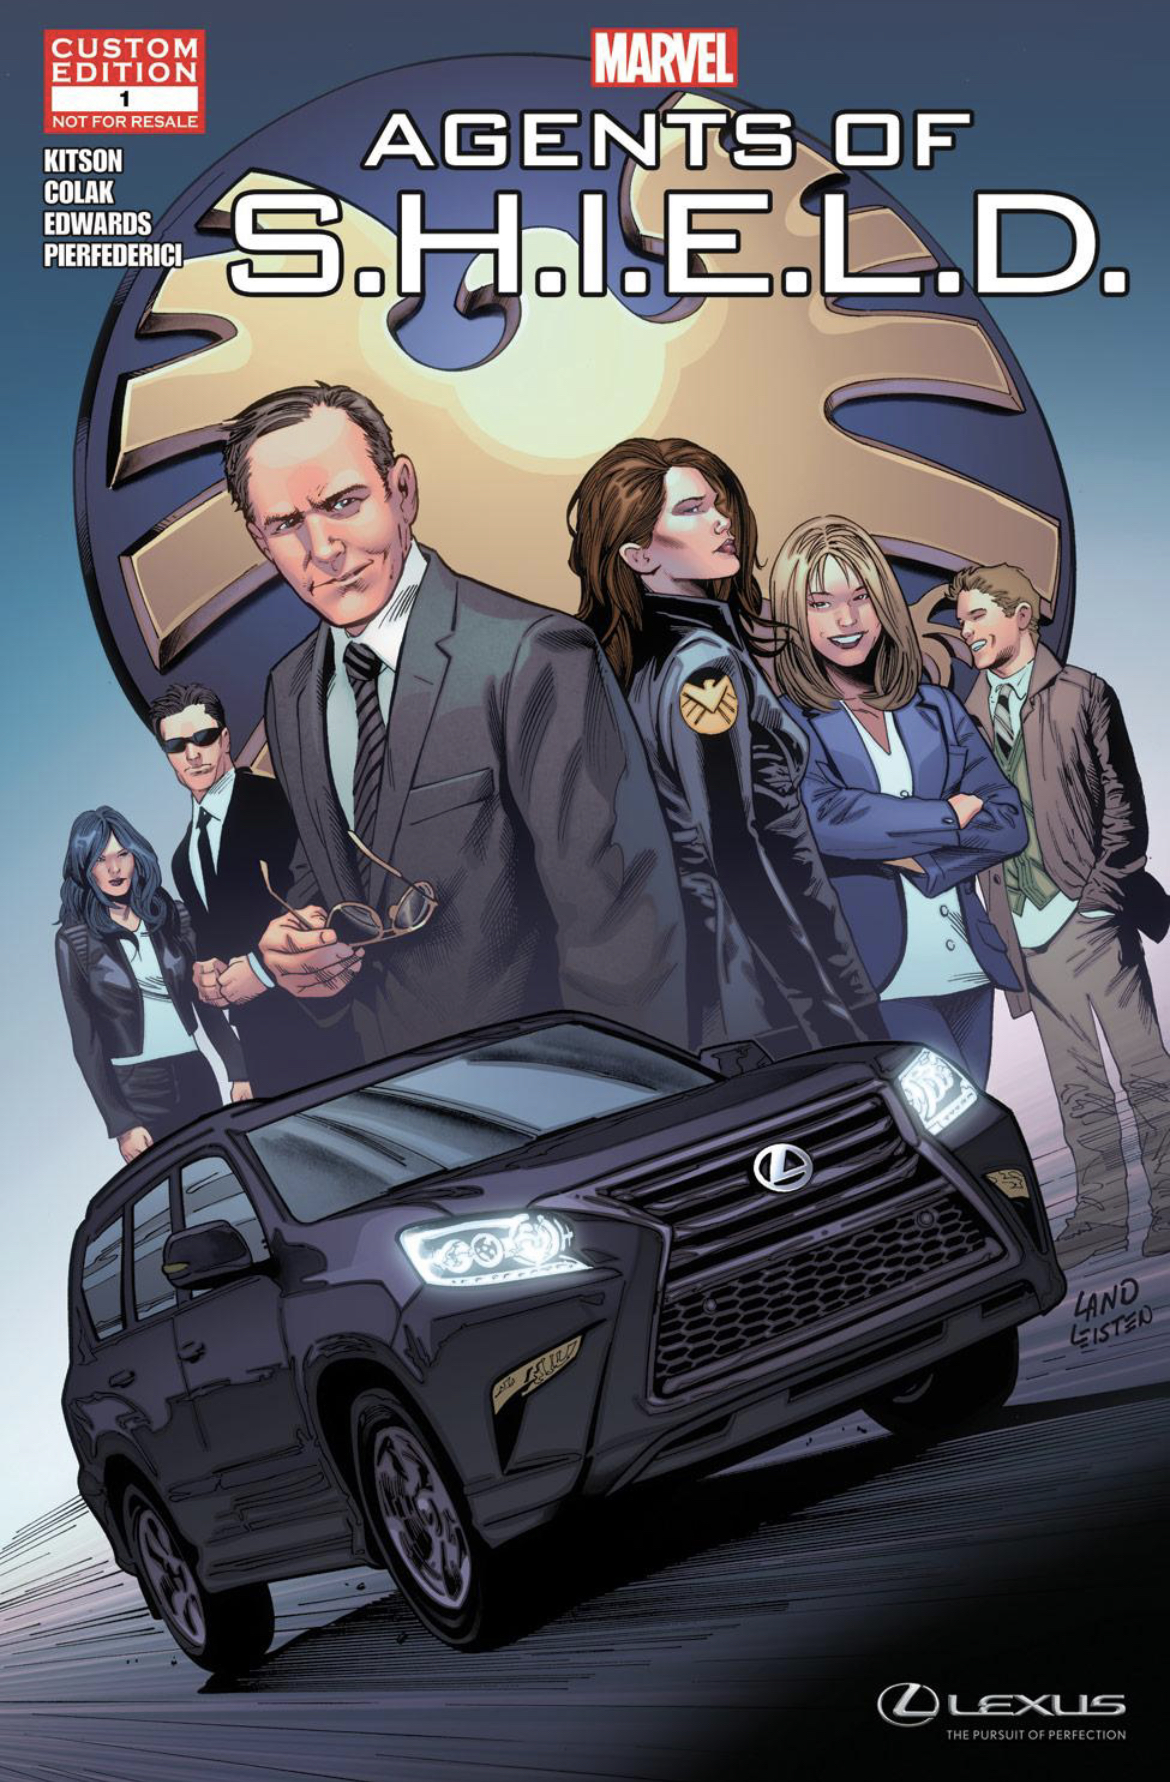 Lexus Presents: Marvel's Agents of S.H.I.E.L.D in the Chase